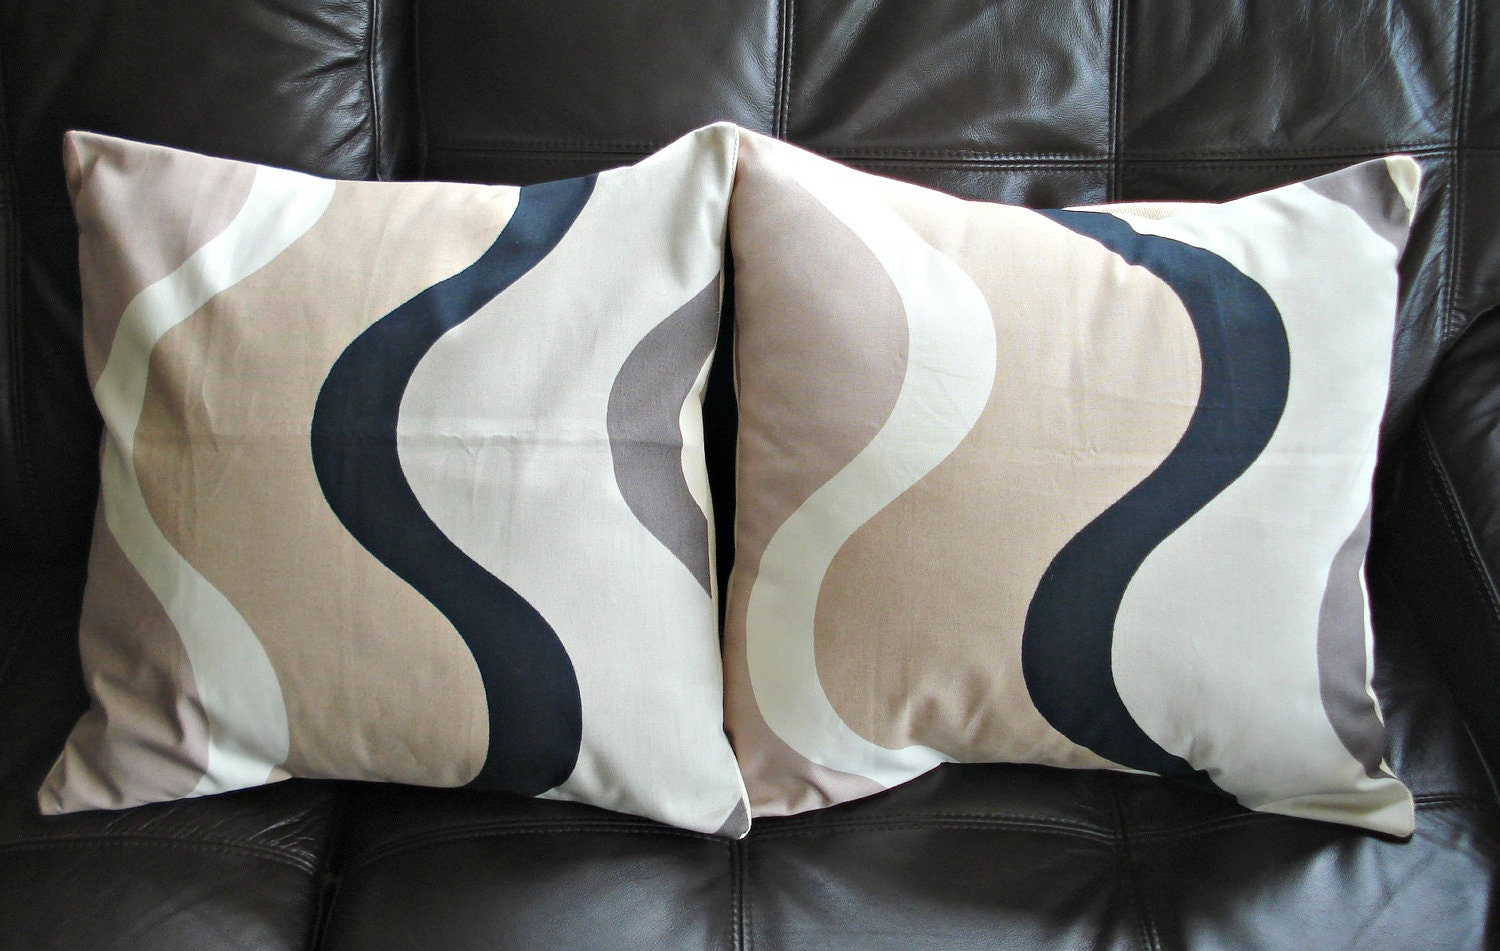 Black White Tan Throw Pillows : Throw pillow beige cream brown off white black swirl by VeeDubz